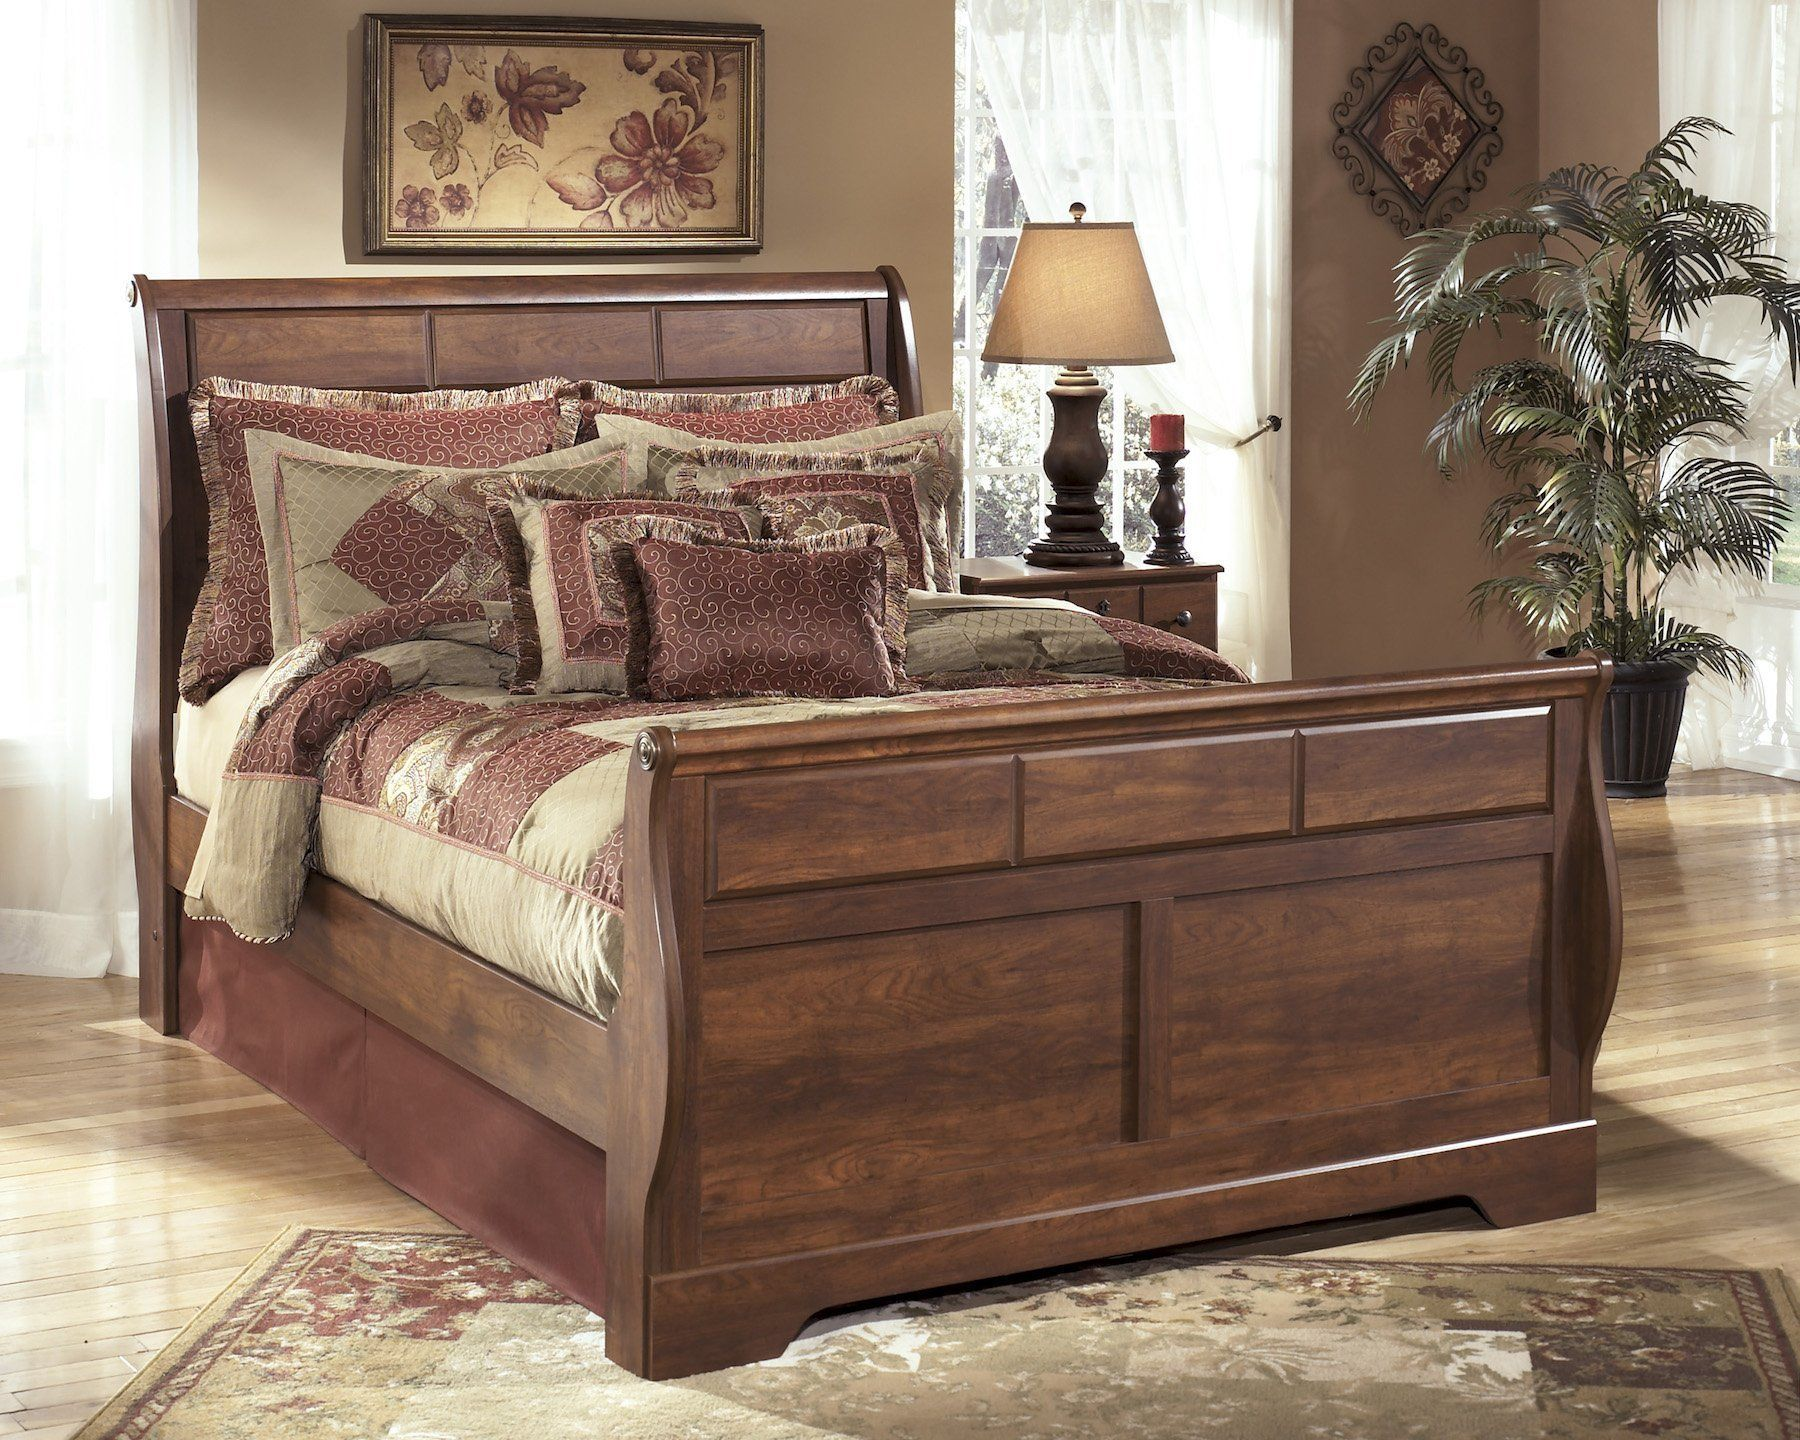 ashley timberline queen sleigh bed in warm brown want to know